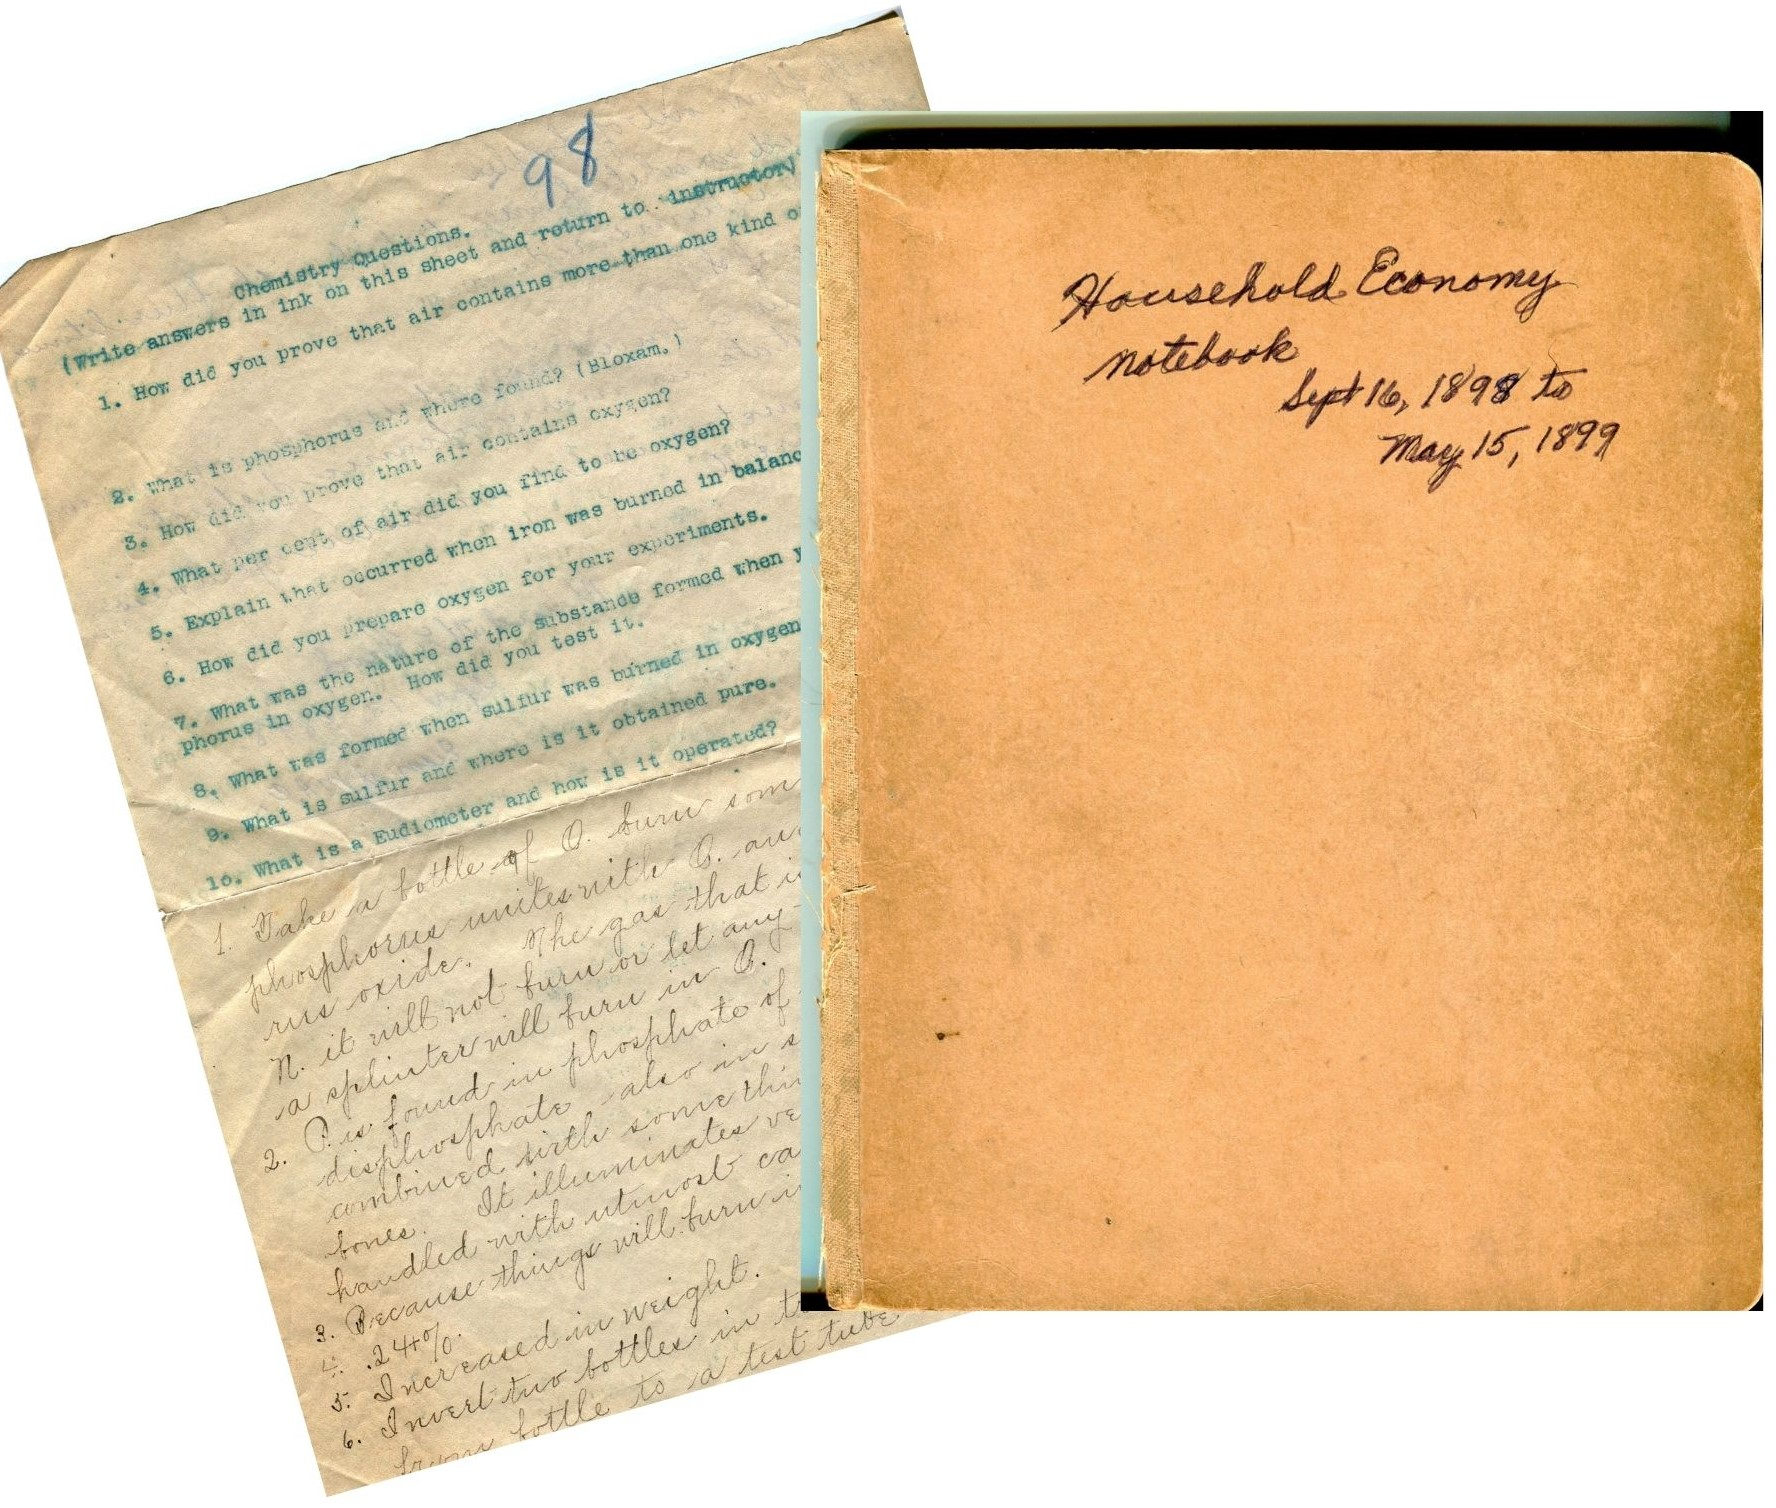 Maud McLeod's chemistry assignment and household economy notebook